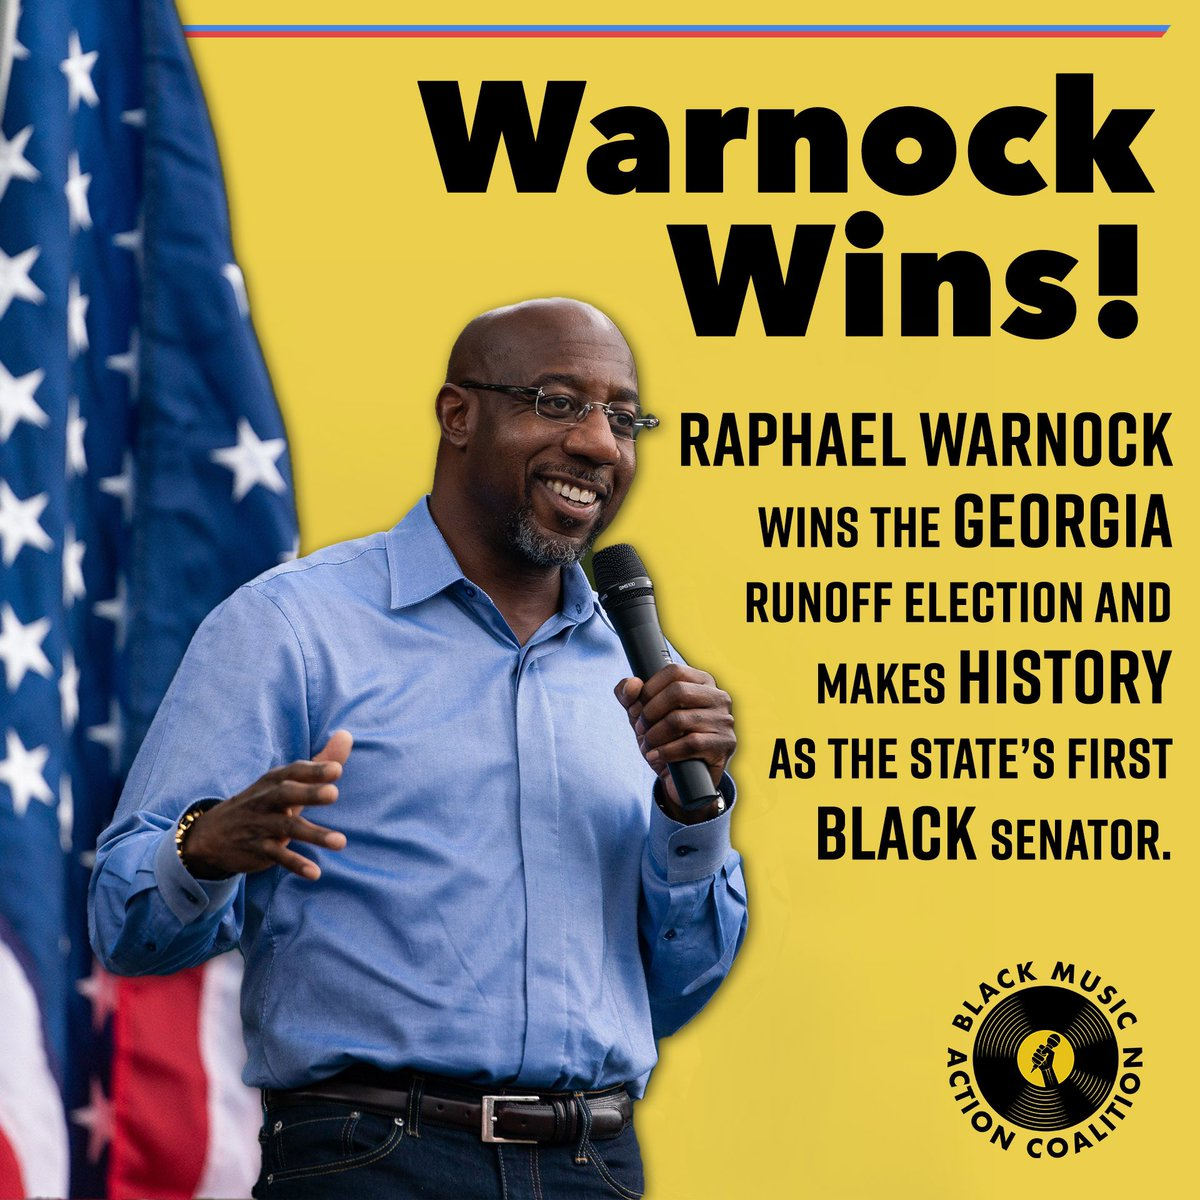 GEORGIA DID IT AGAIN! #BlackVotesMatter #BlackLivesMatter #Warnock #Ossoff #BMAC #FairFightAction